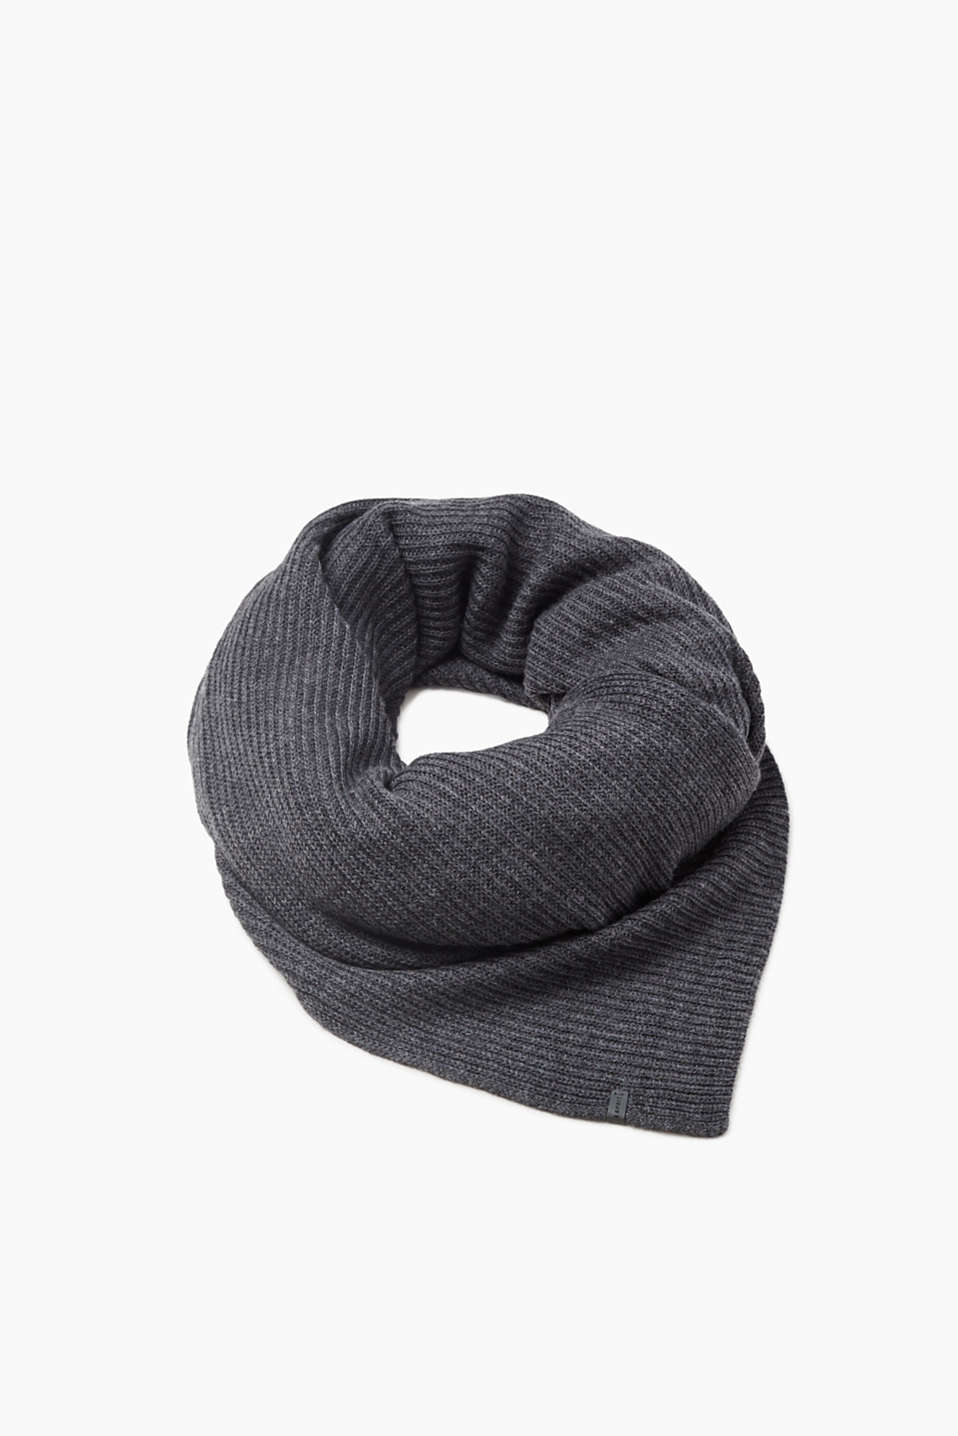 Most warmly recommended! This soft, luxury scarf in 100% wool generates wonderful warmth for the winter.